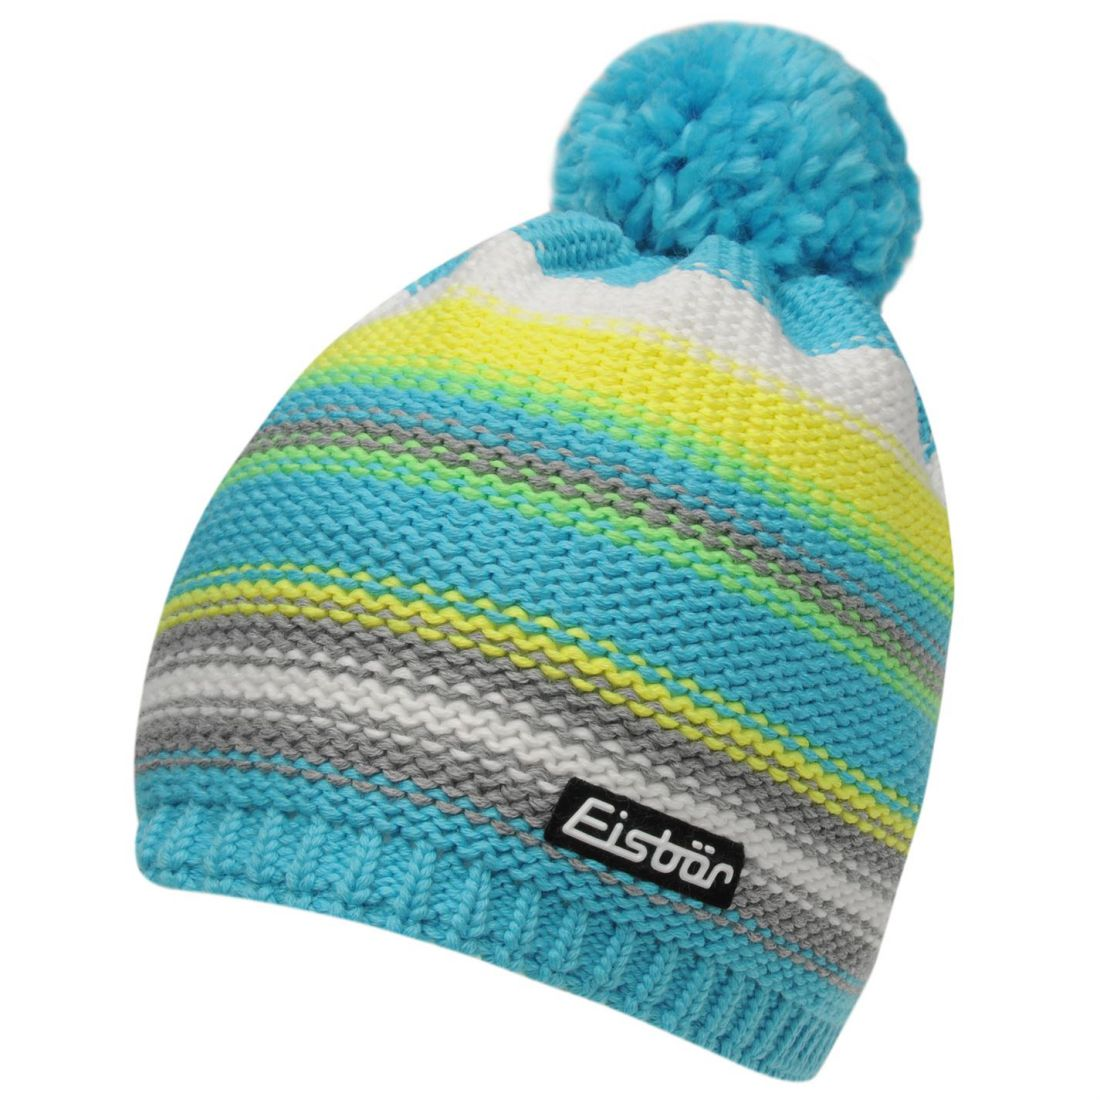 Details about Eisbar Childrens Dakota Hat Sport Activities Winter Snow  Headwear Accessory 77d3aeb135f